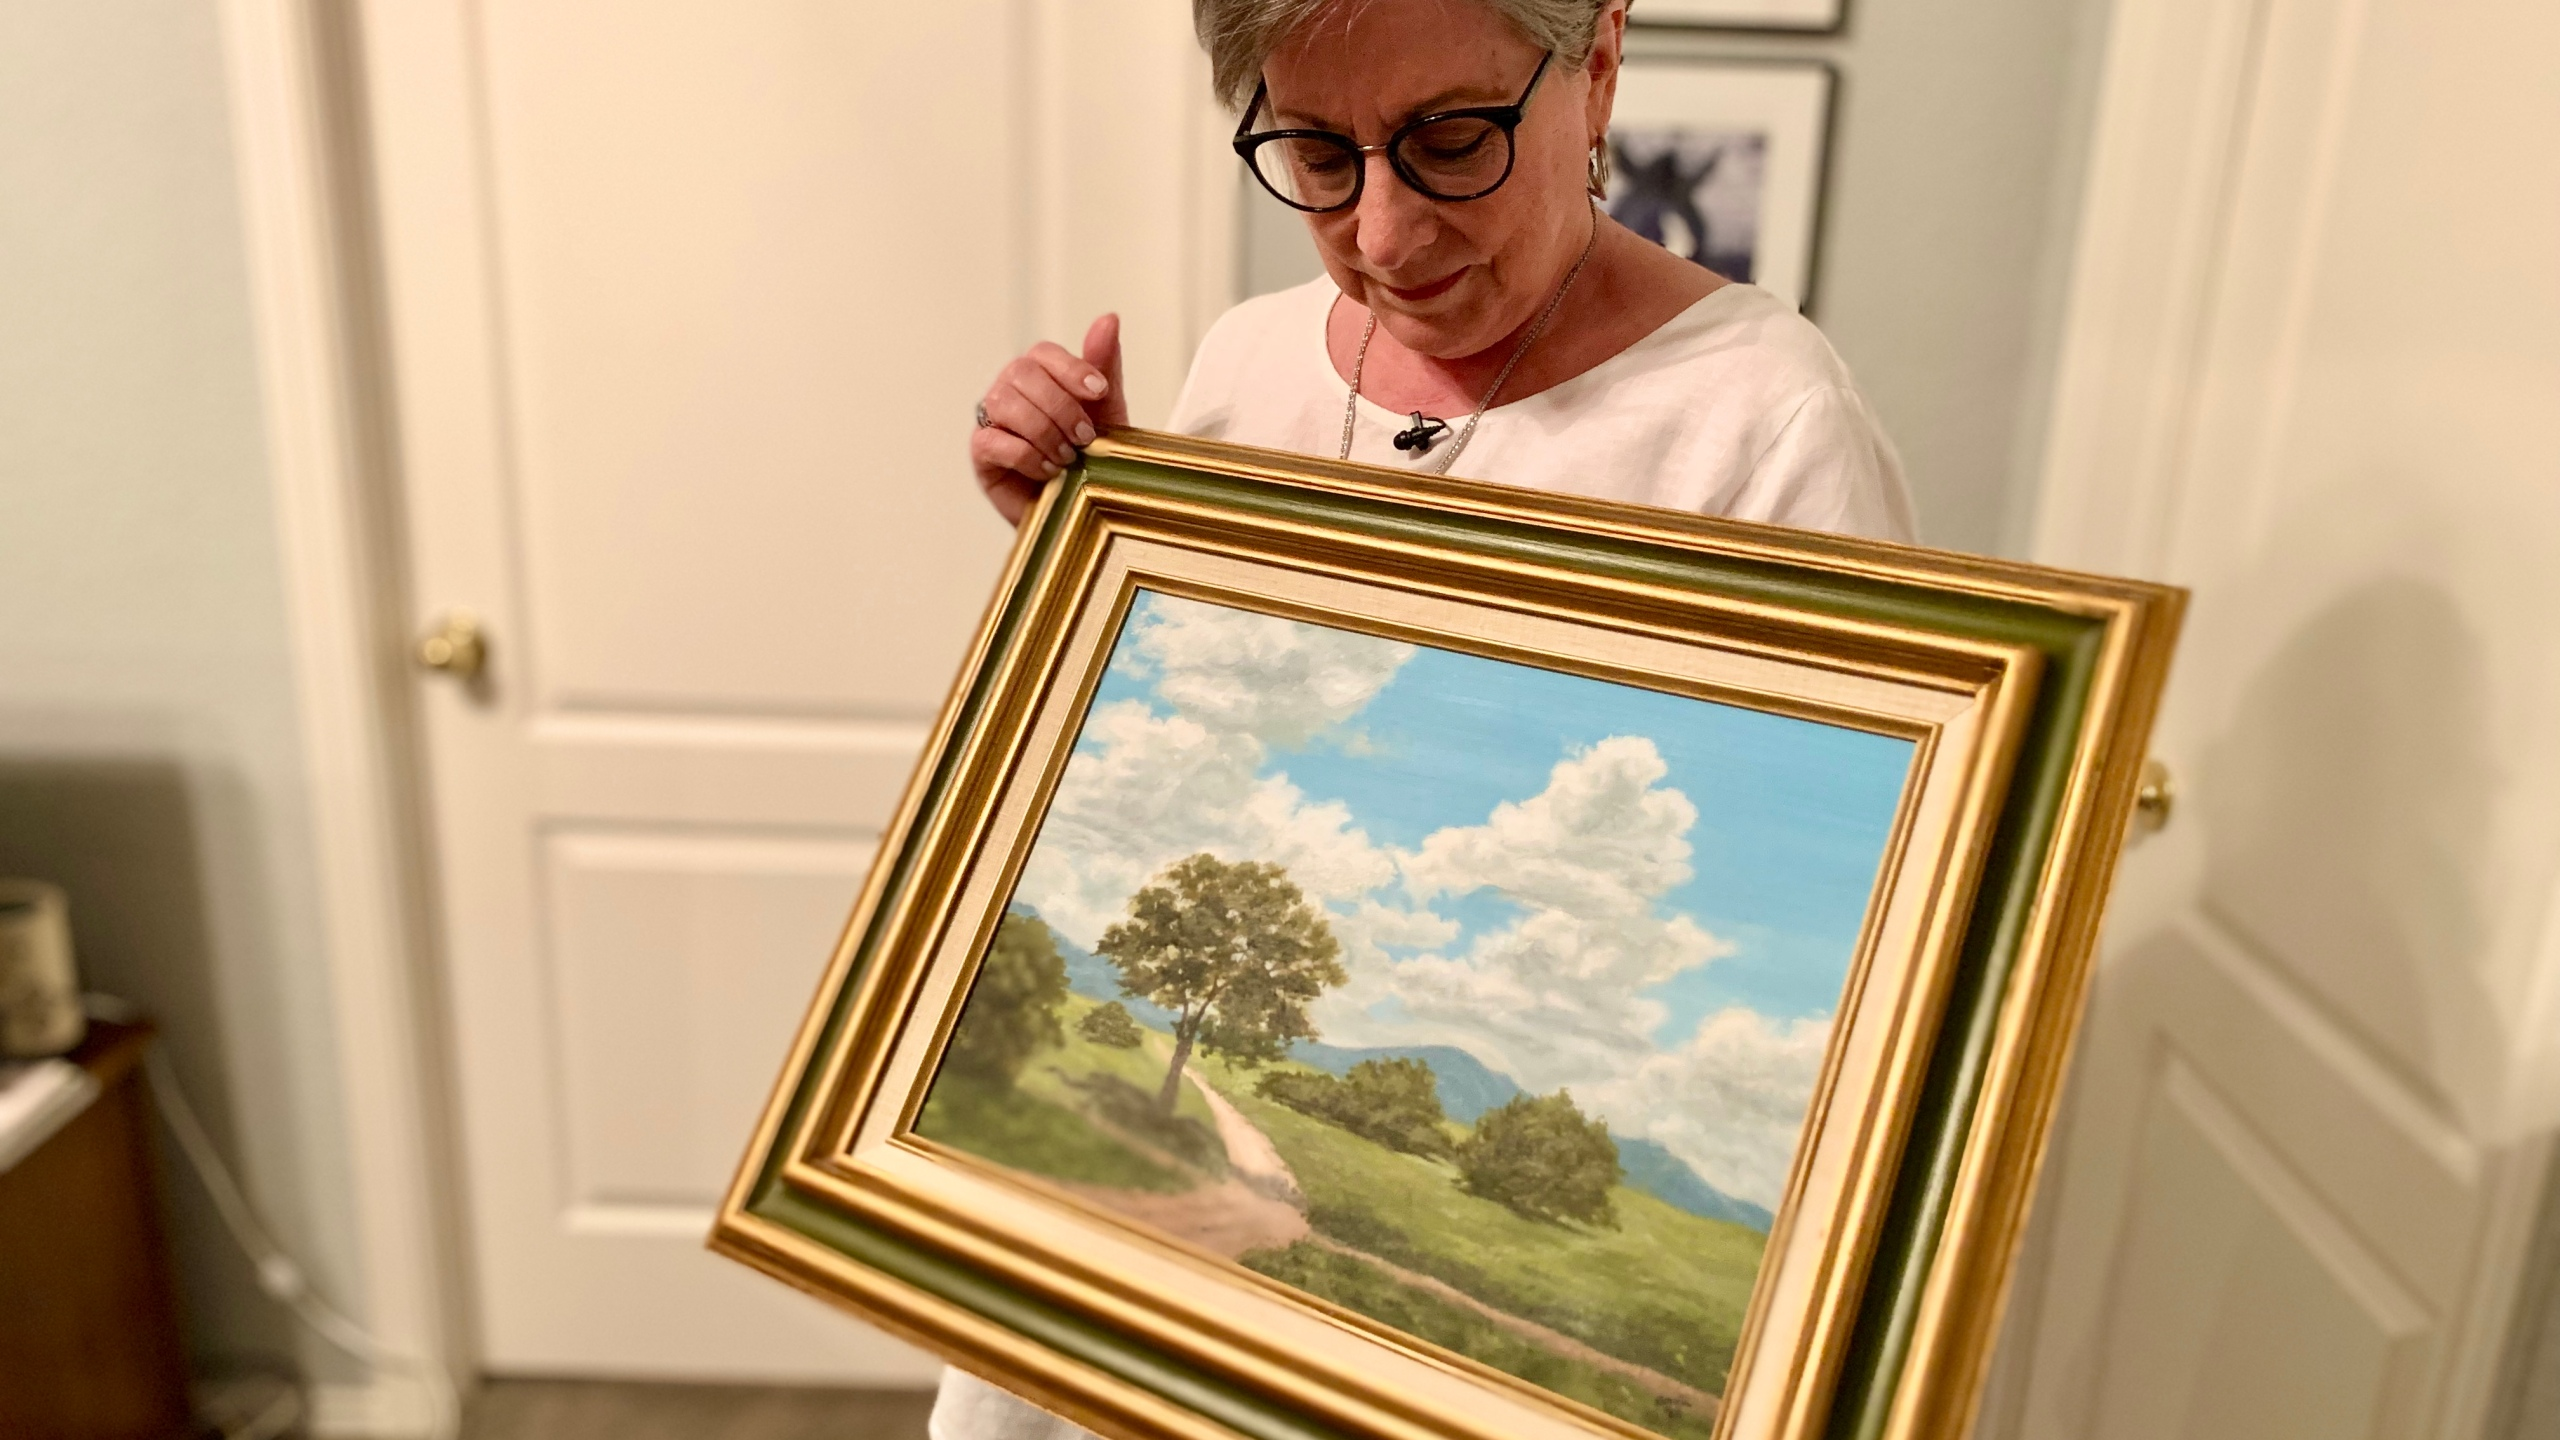 Sharon Butler's holds a painting her mother was working on when she had a stroke. It shows a landscape